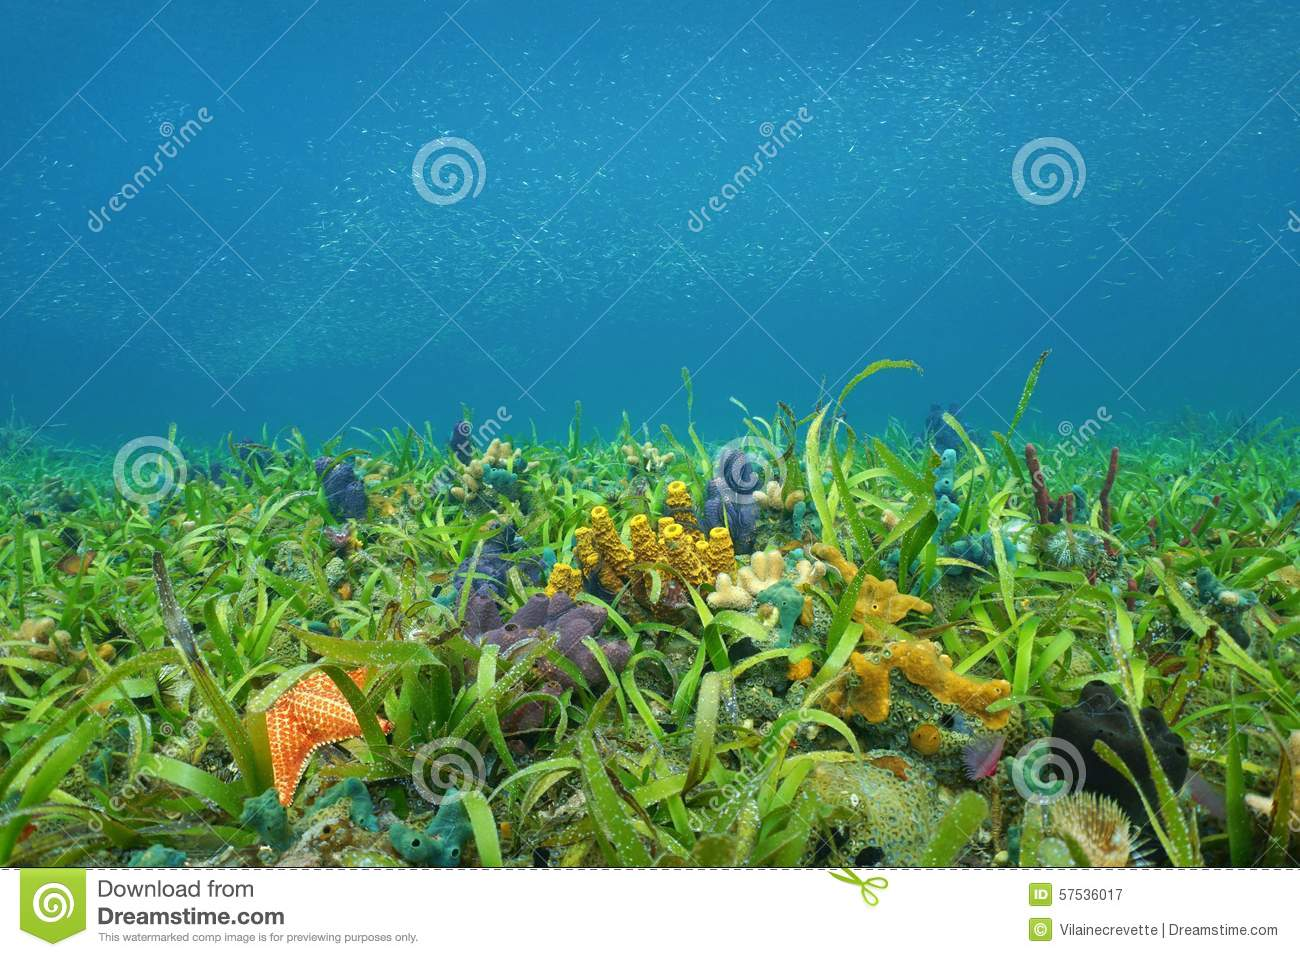 Ocean Floor With Sea Grass And Colorful Sponges